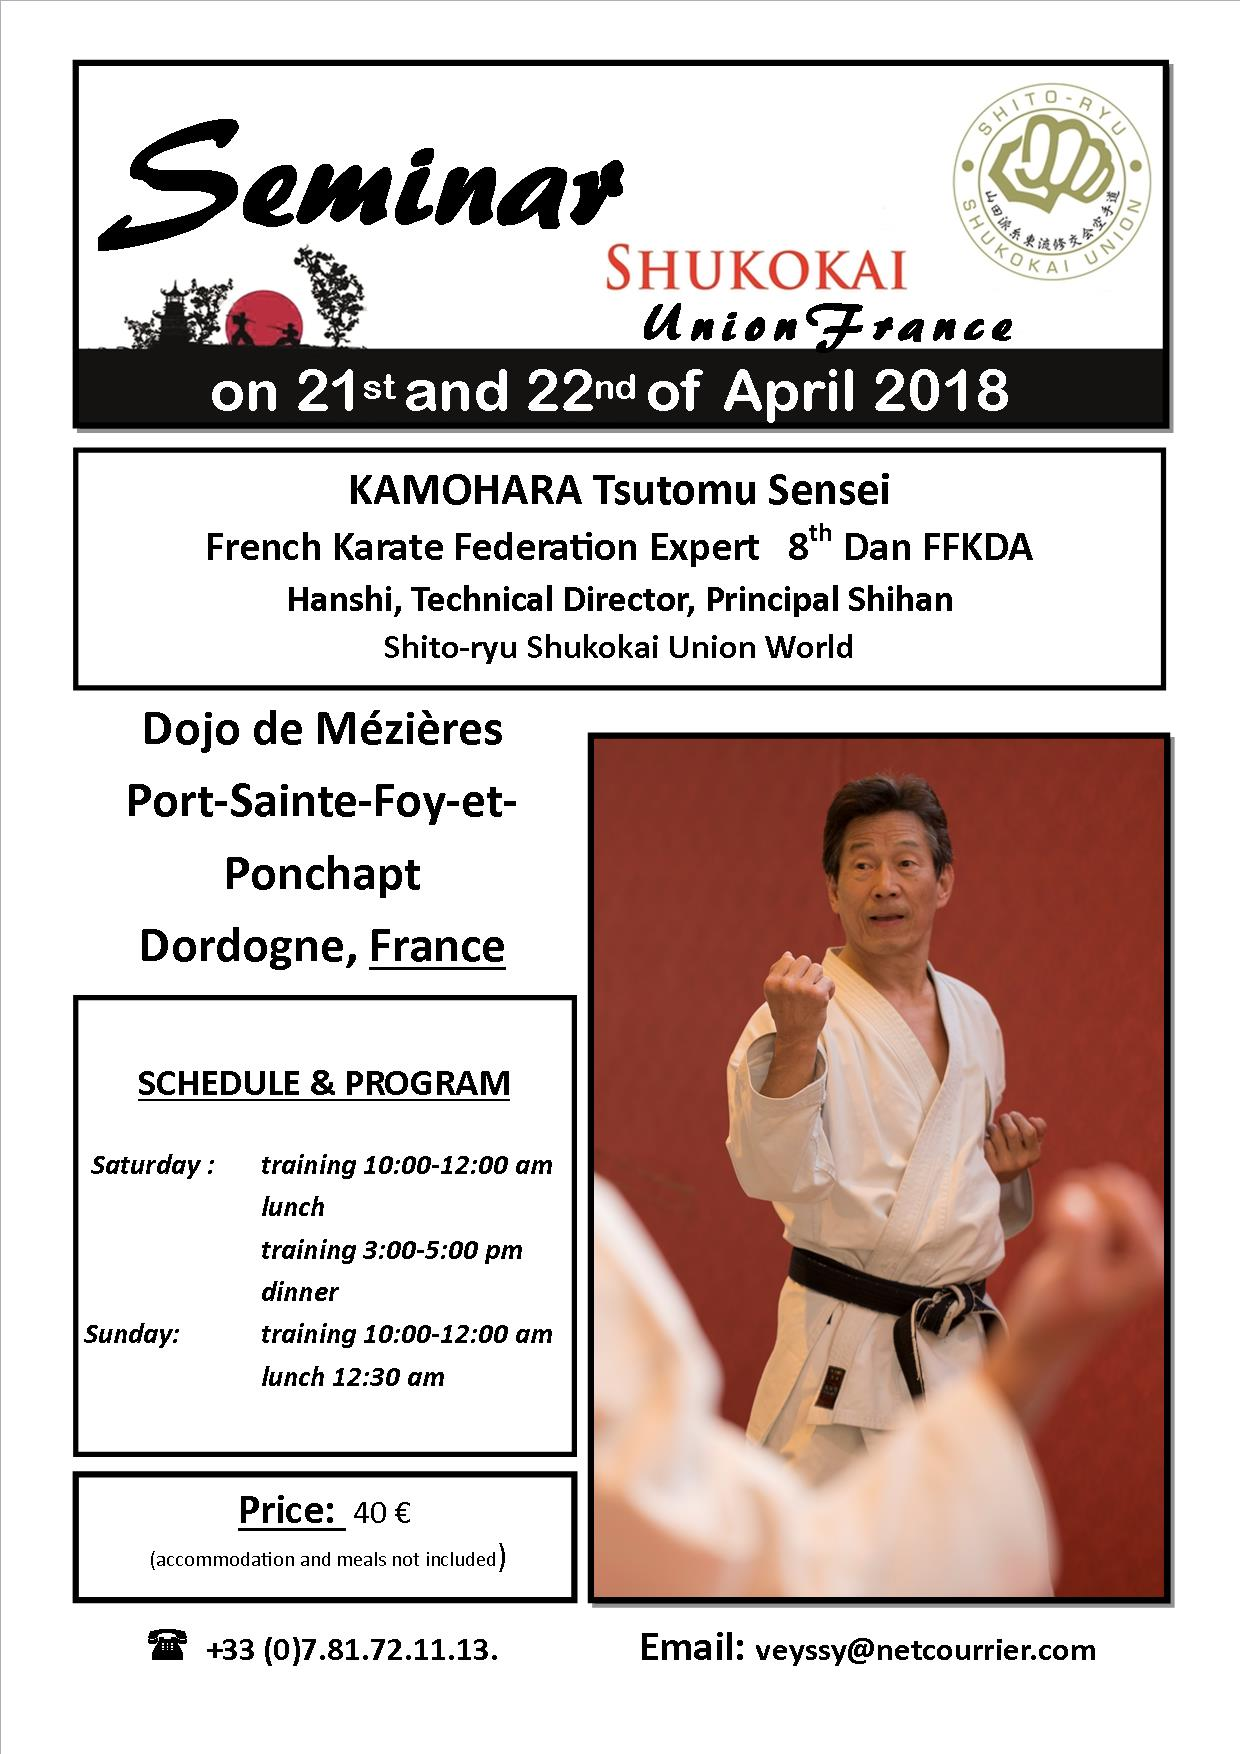 kamohara-sensei-seminars-france-2018